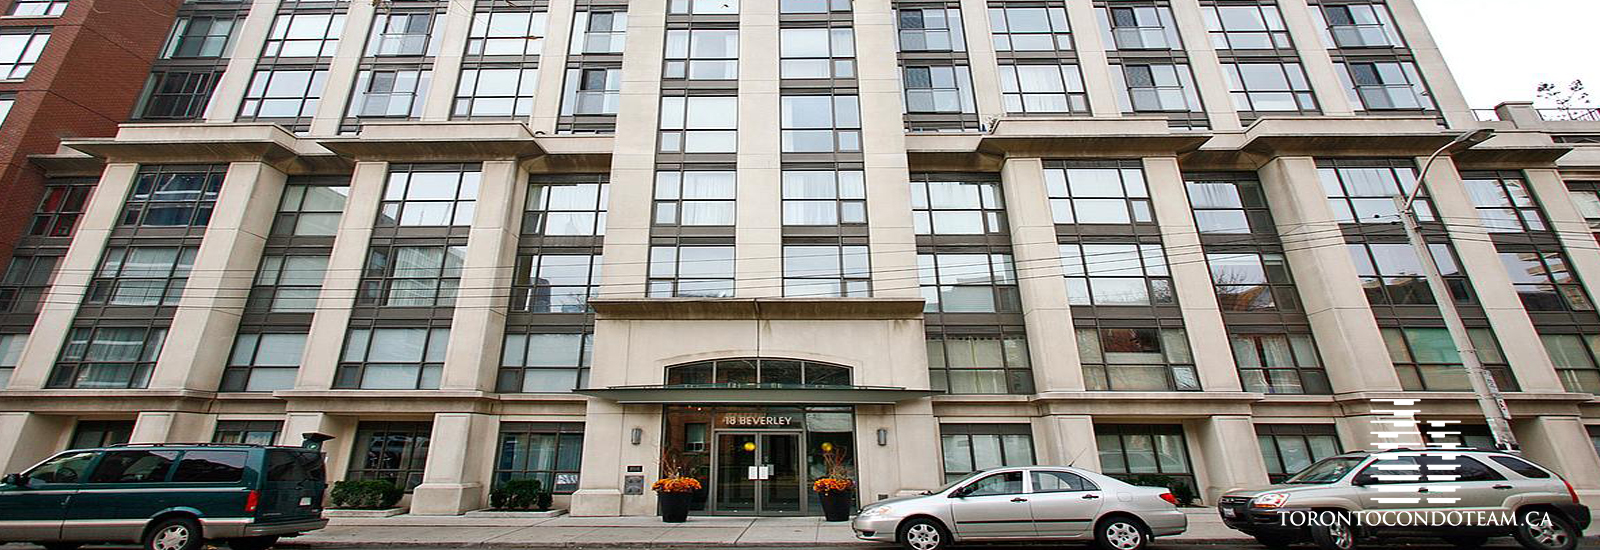 18 Beverley Street Condos For Sale